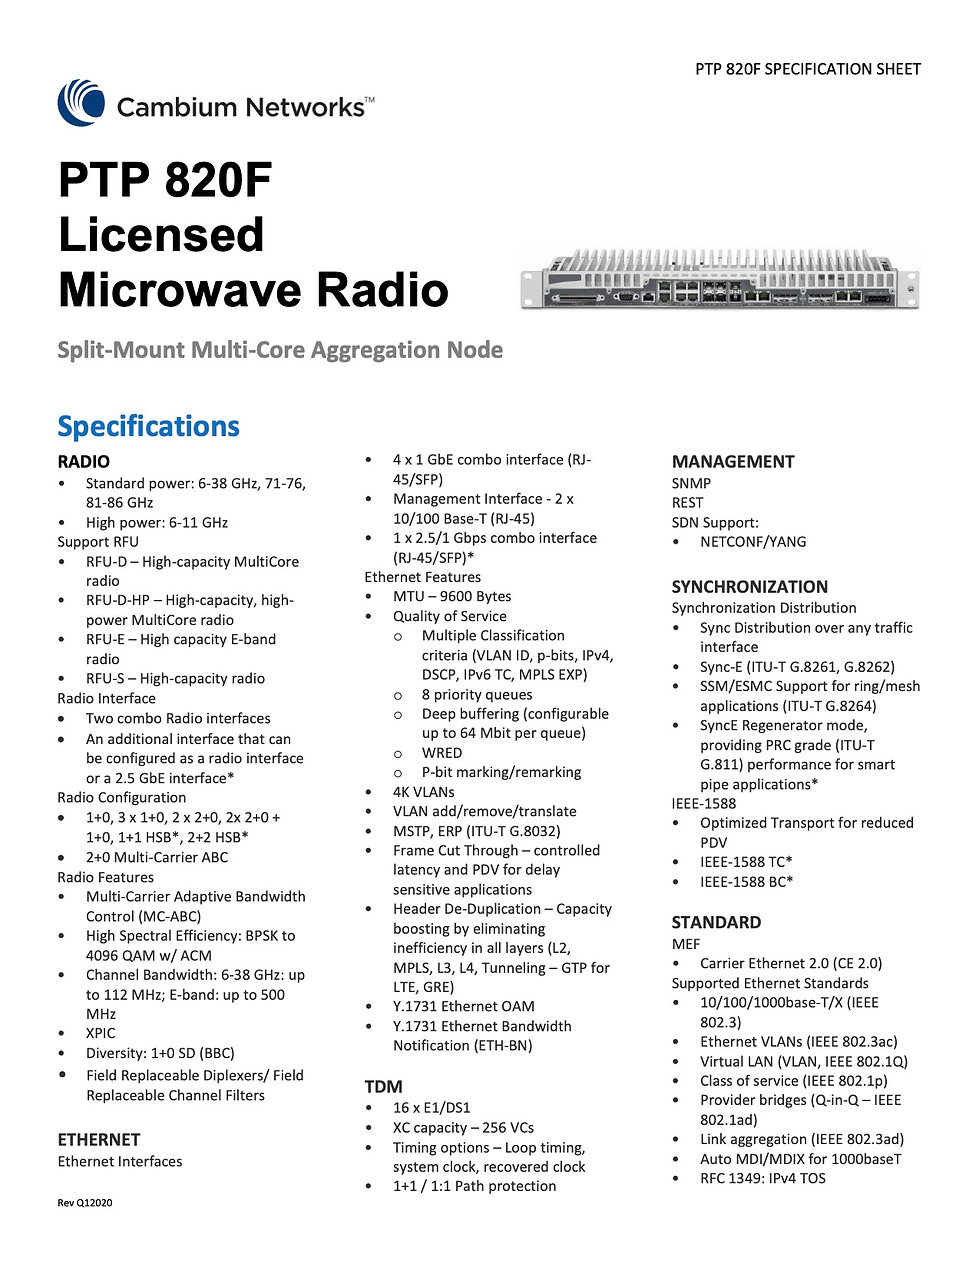 Cambium​​ PTP 820F Specification